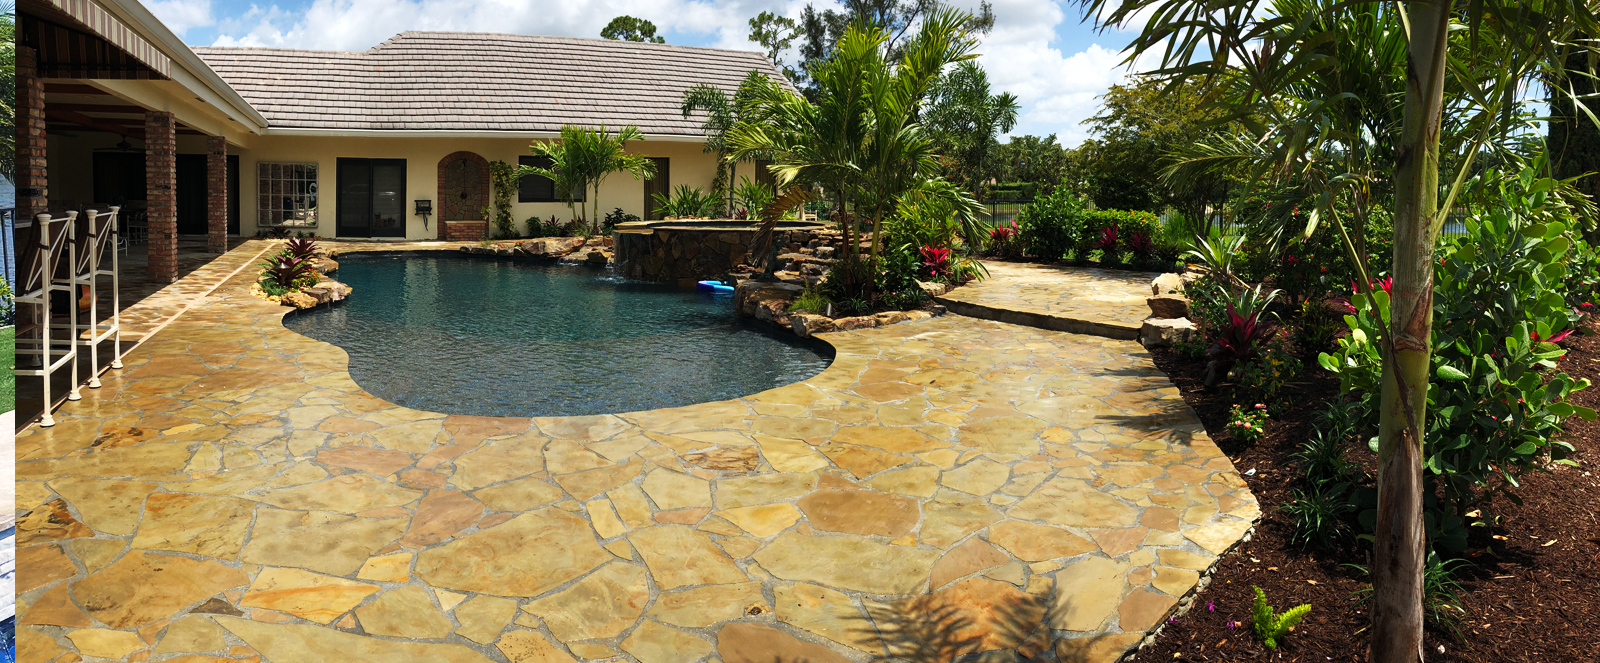 backyard with large size tile deck with swimming pool